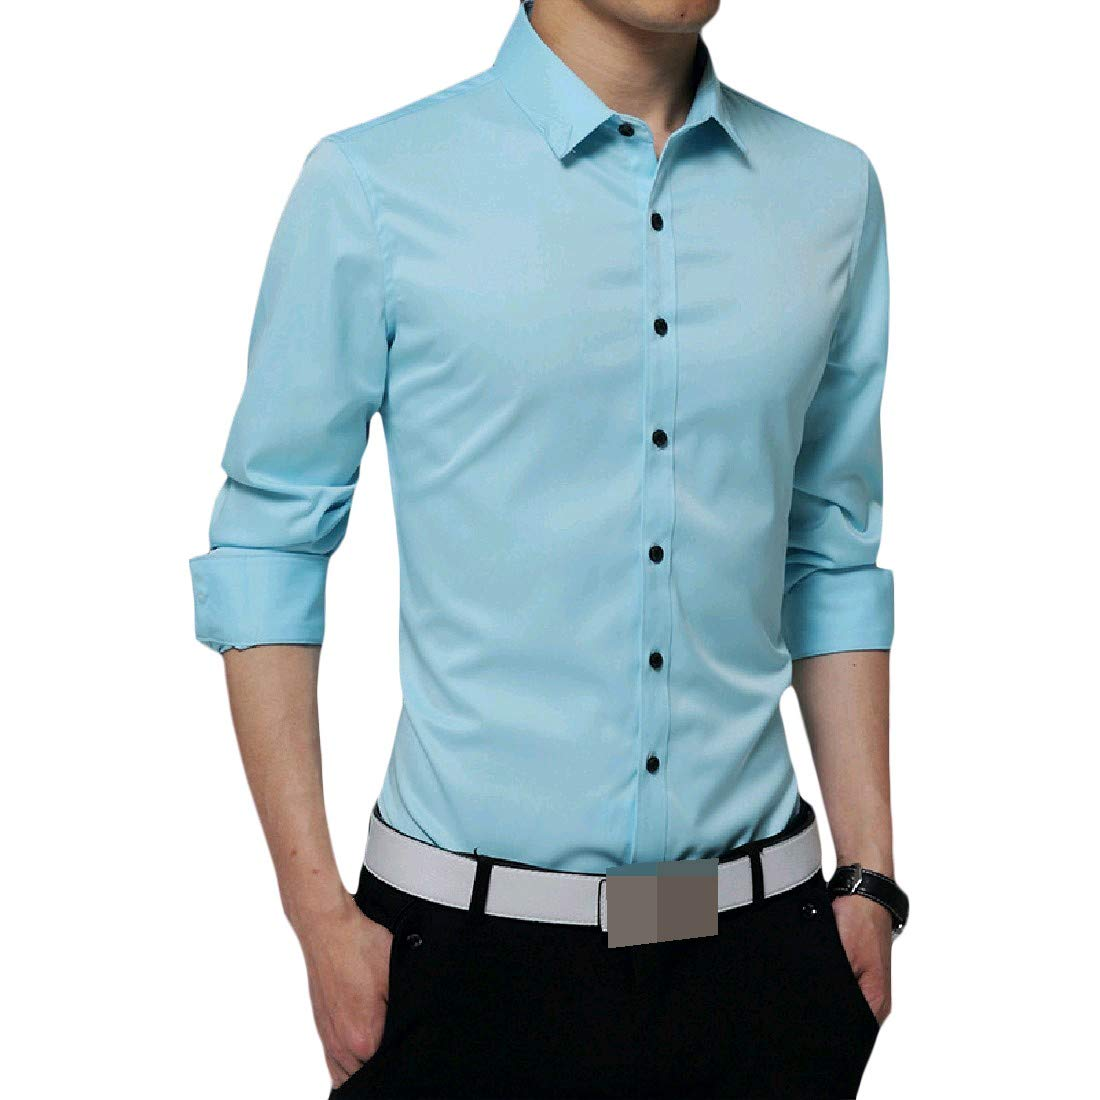 Zimaes-Men Business Plus Size Solid-Colored Button Tees Work Shirt